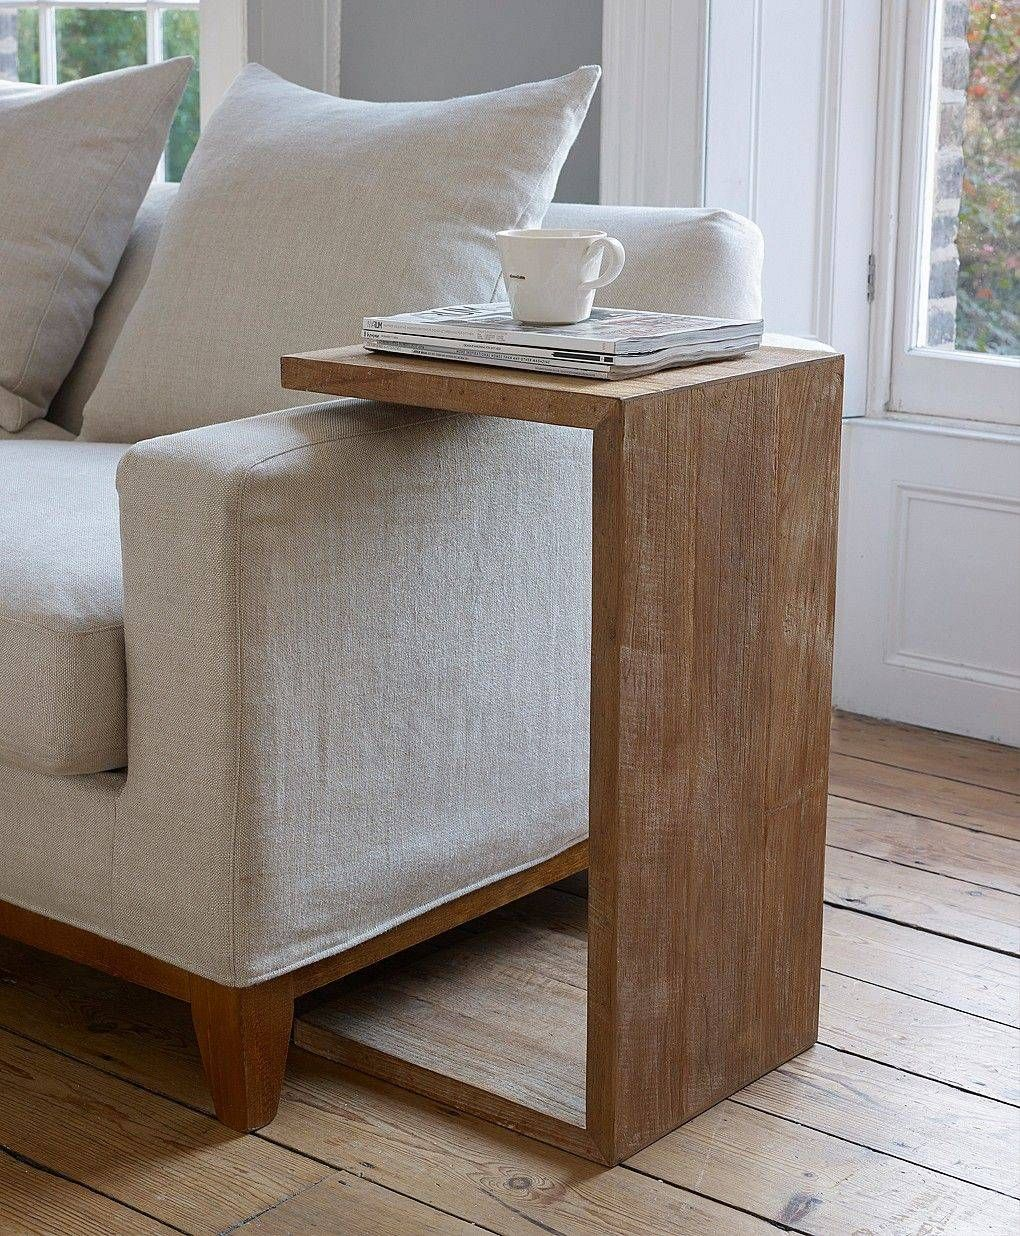 Modern Plywood Bedside Table Design Ideas For Bedroom Table Bedroomdecor Diy Sofa Table Diy Sofa Sofa Side Table